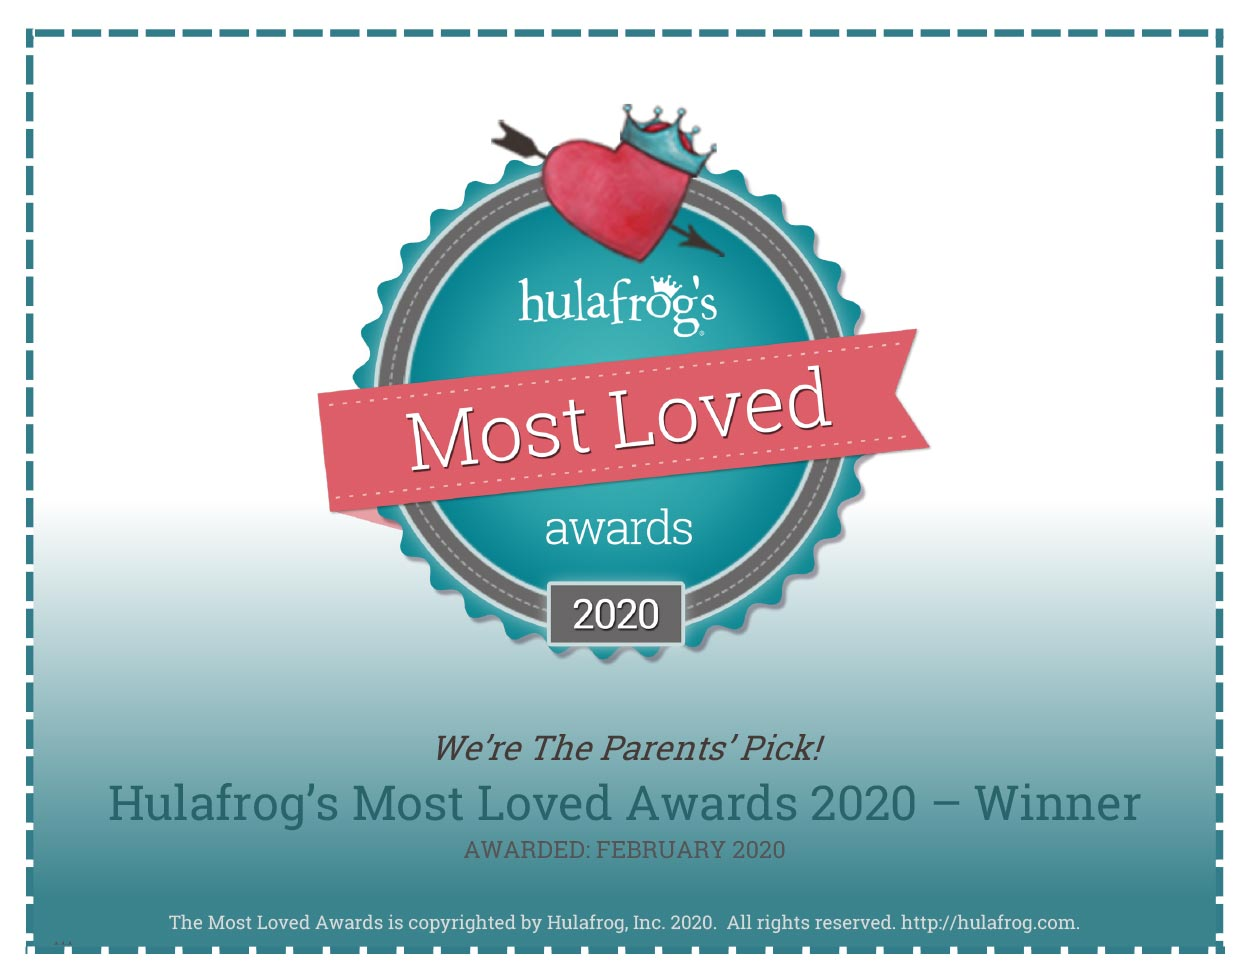 https://hulafrog.com/laurel-columbia-md/most-loved-winners